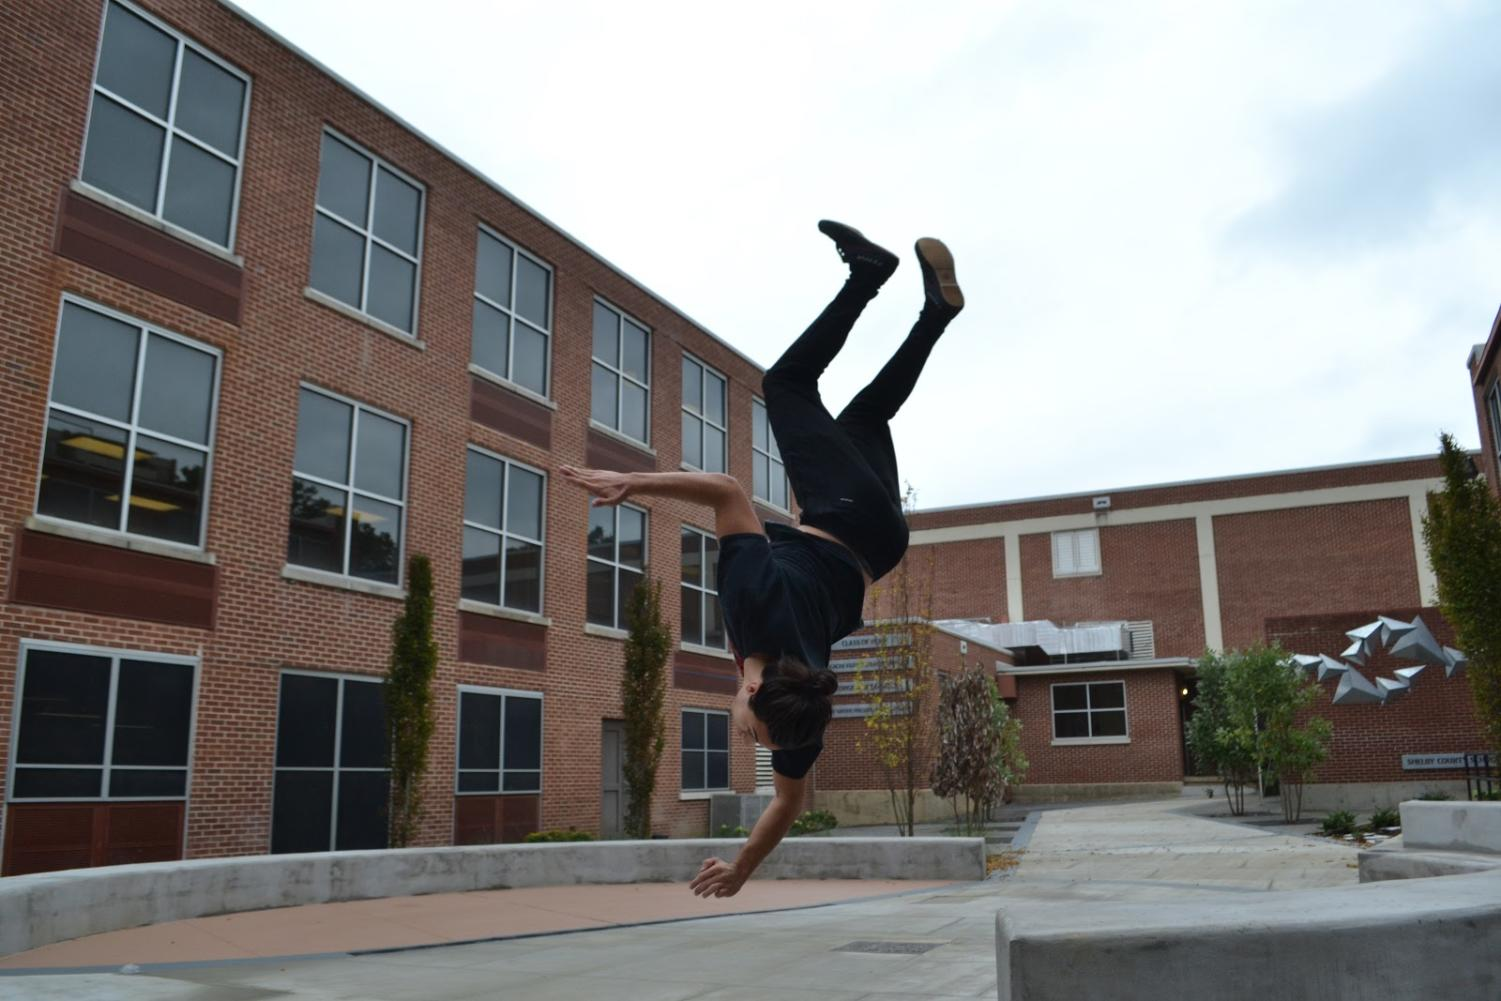 Hayden Gowen (10) completes a front flip in the courtyard at White Station. Gowen began doing parkour in the seventh grade and plans to continue in the future.